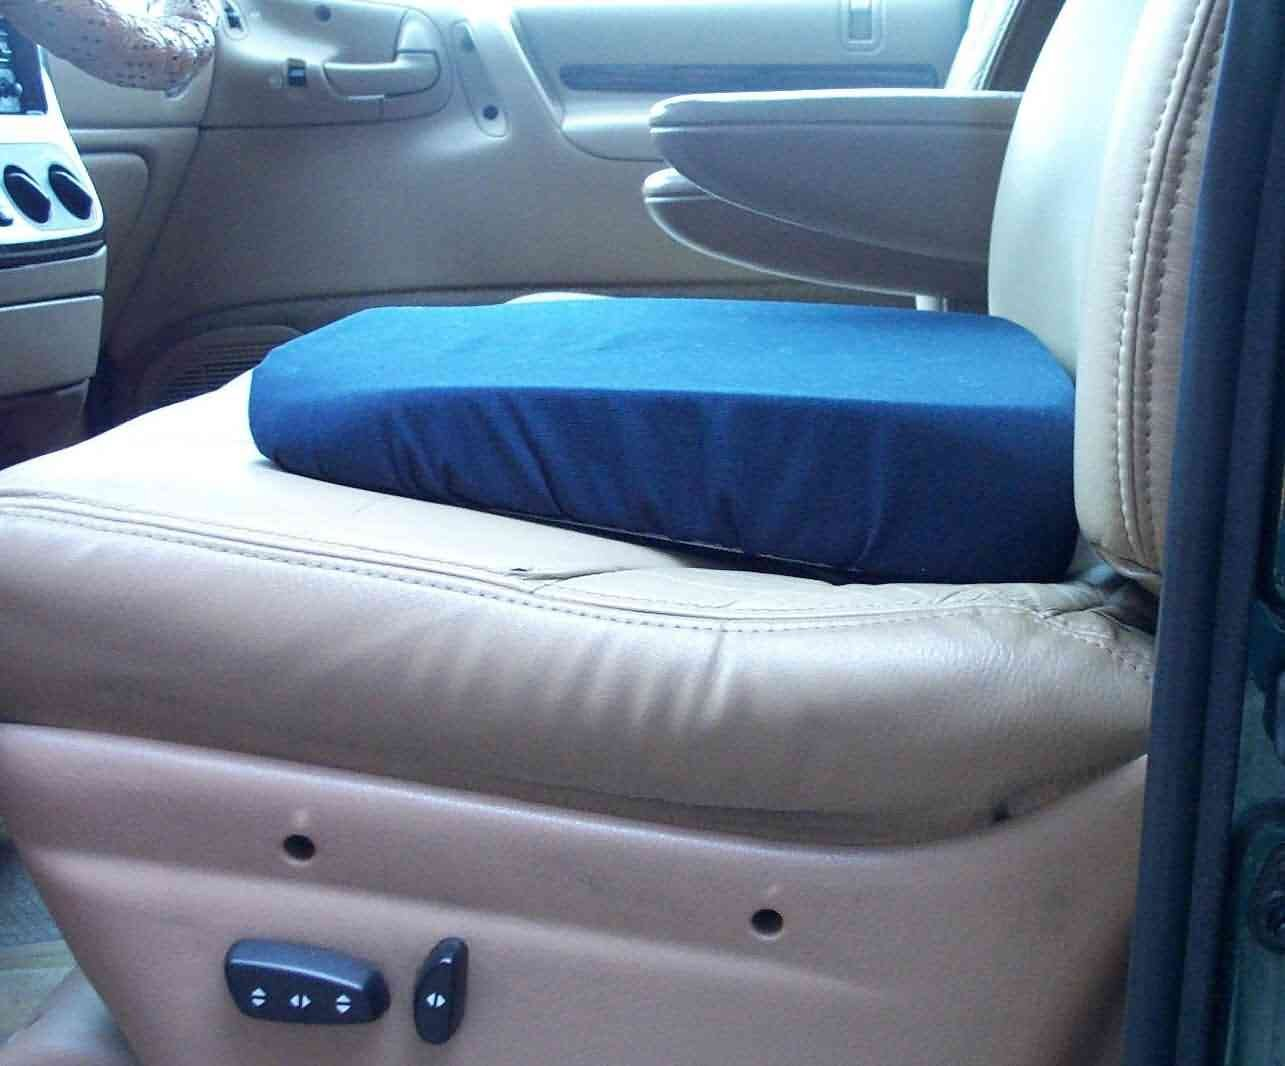 Amazon.com: Seat Wedge Cushion, 15x14 In. Blue Washable Cover: Beauty